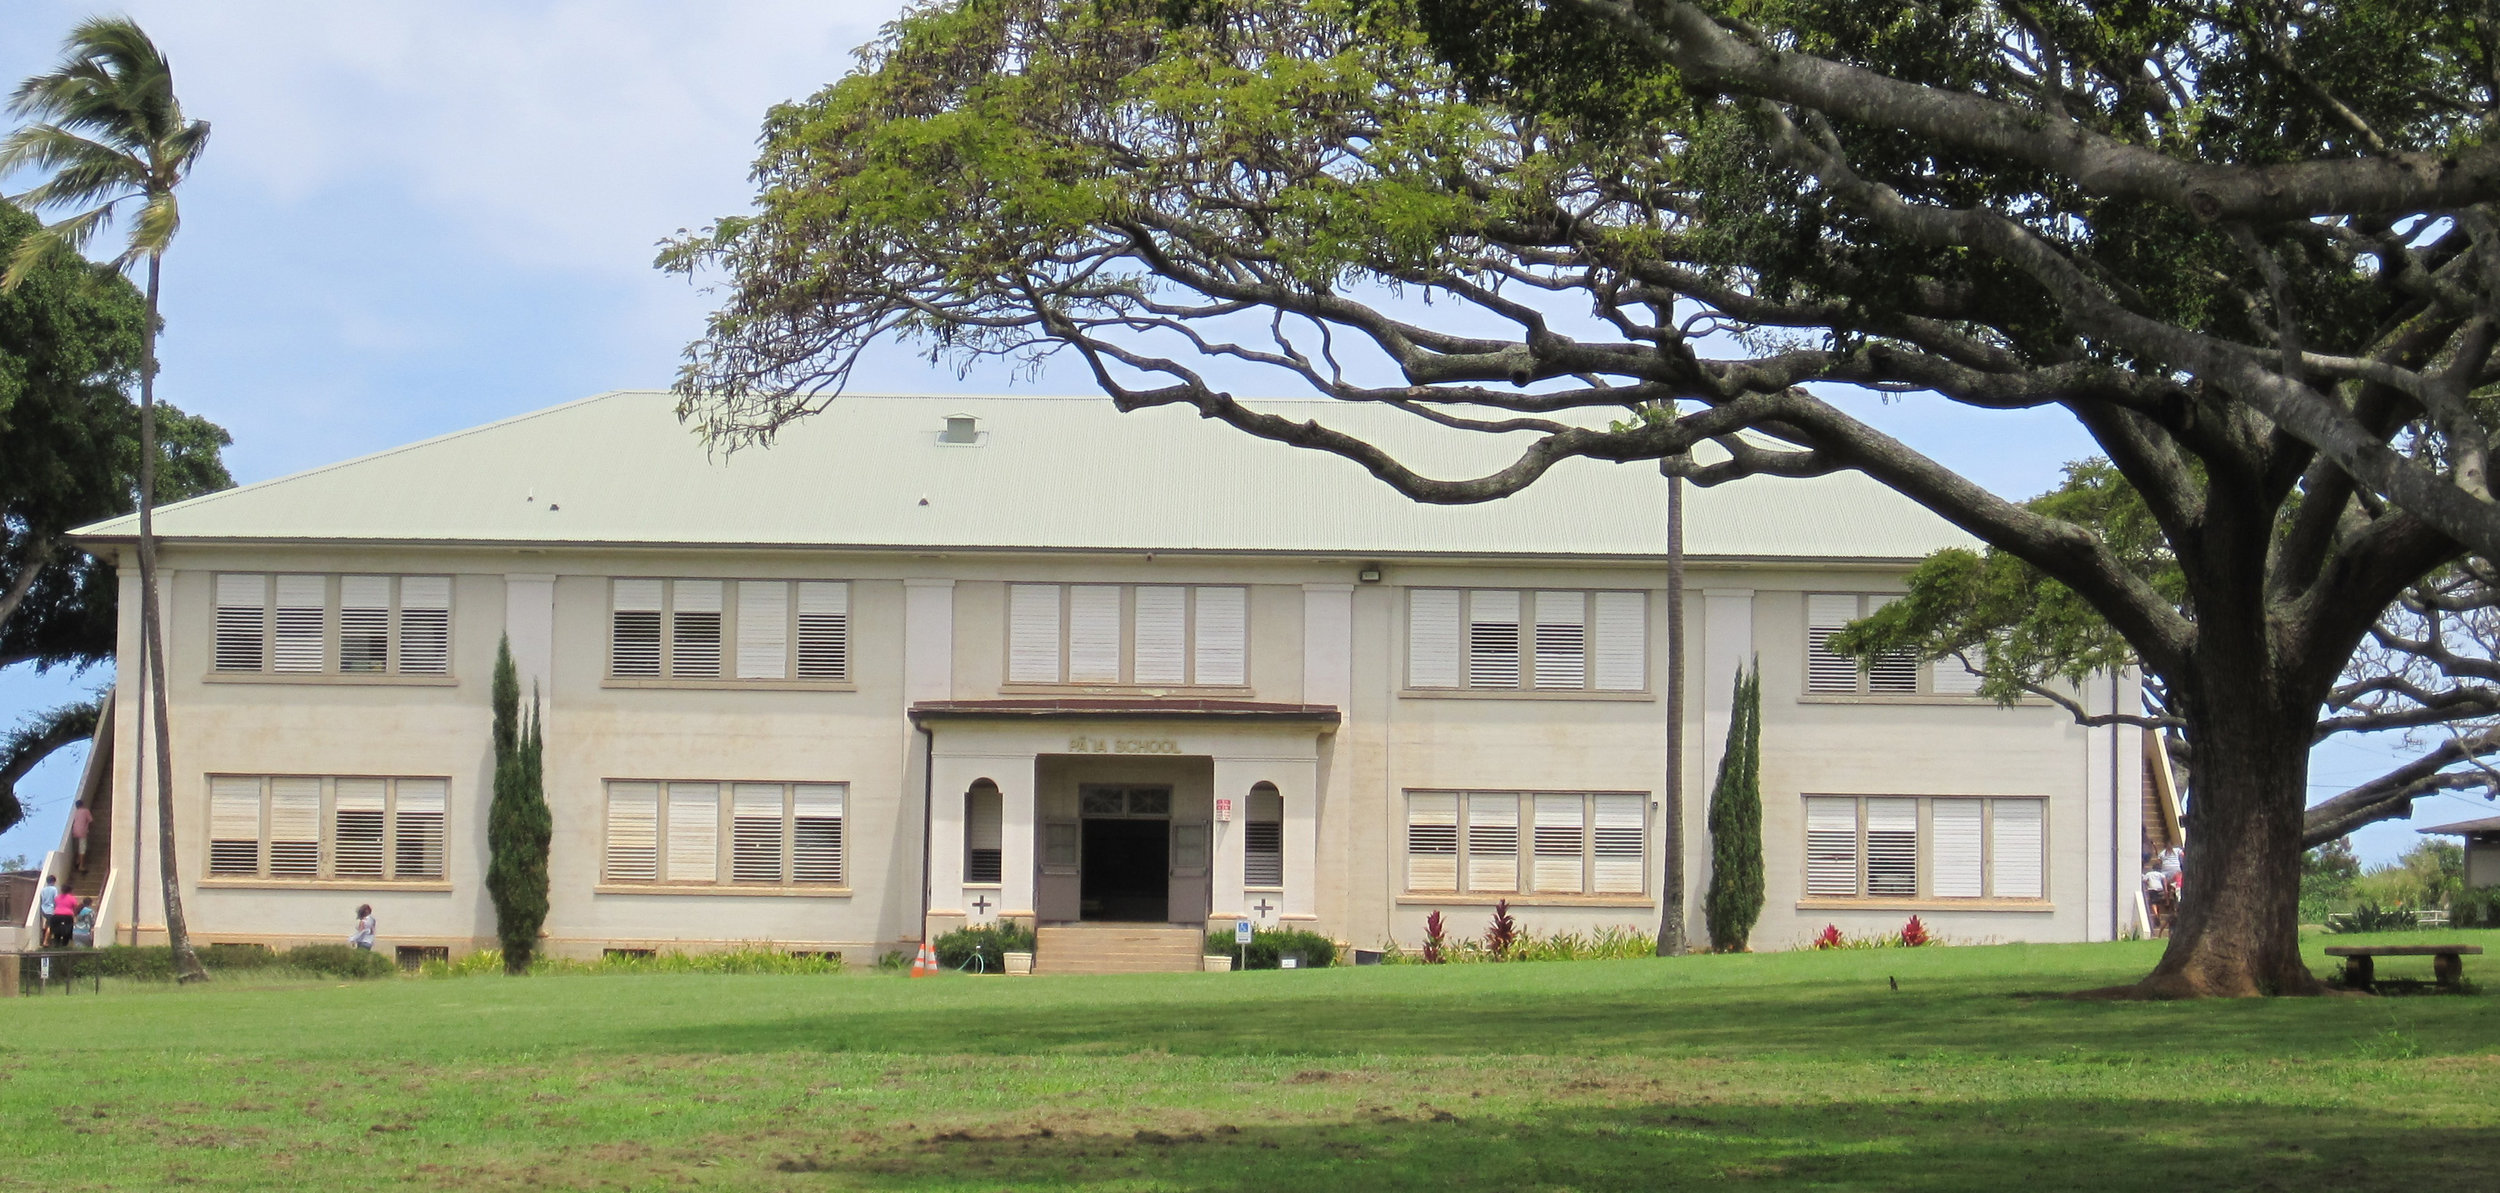 Paia Elementary School (picture from PE Website)